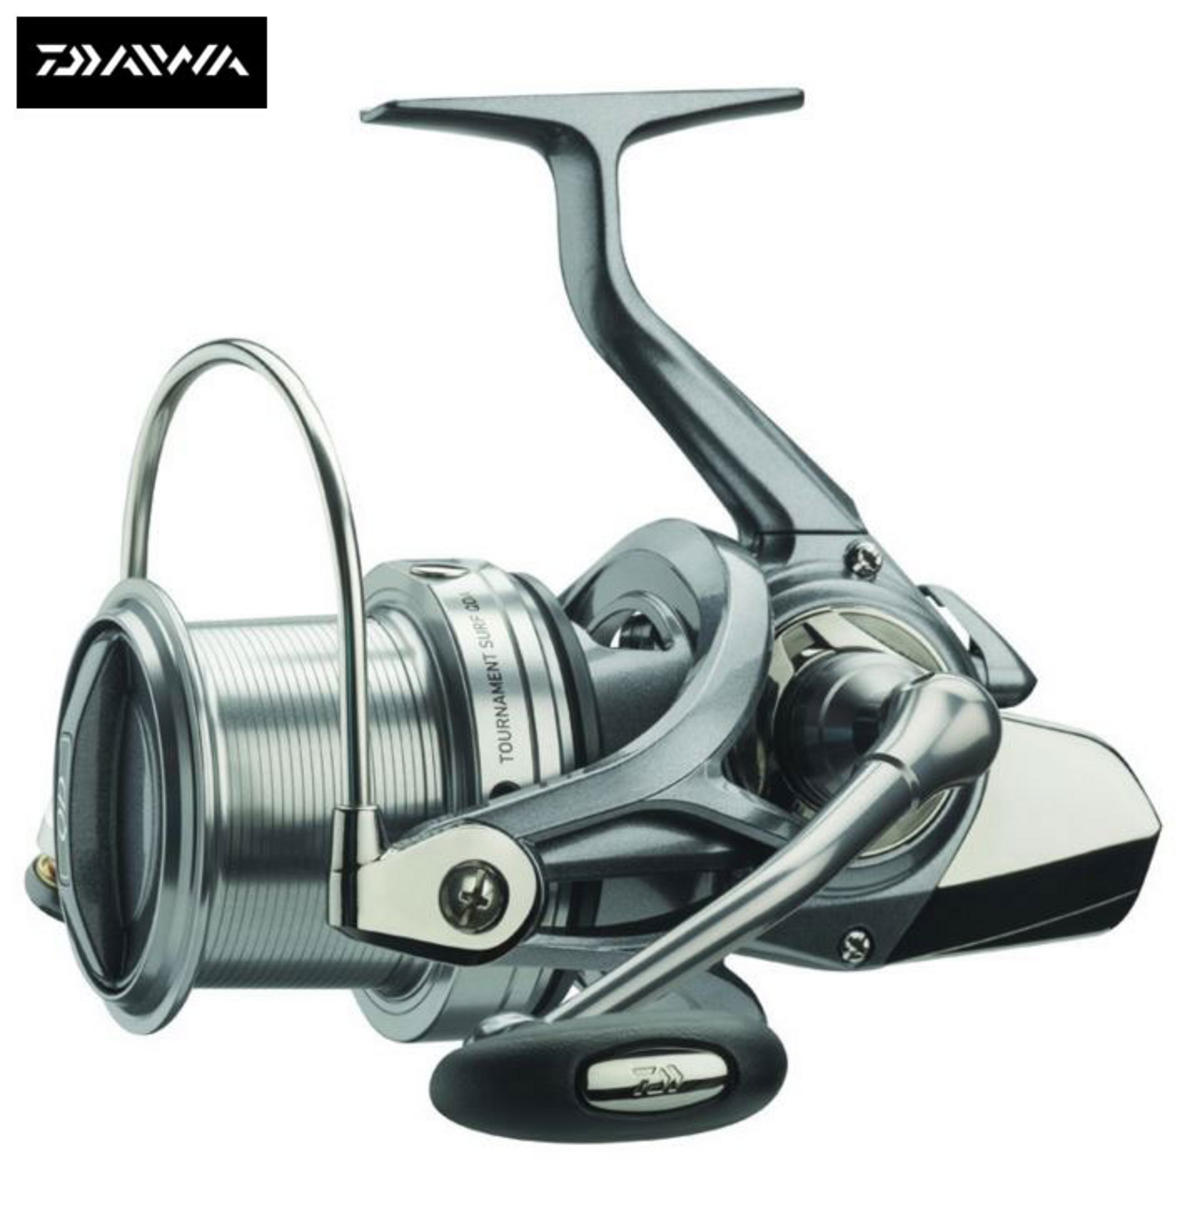 EX DISPLAY DAIWA TOURNAMENT SURF 5000 QDA FISHING REEL Model No. TNS5000QDA